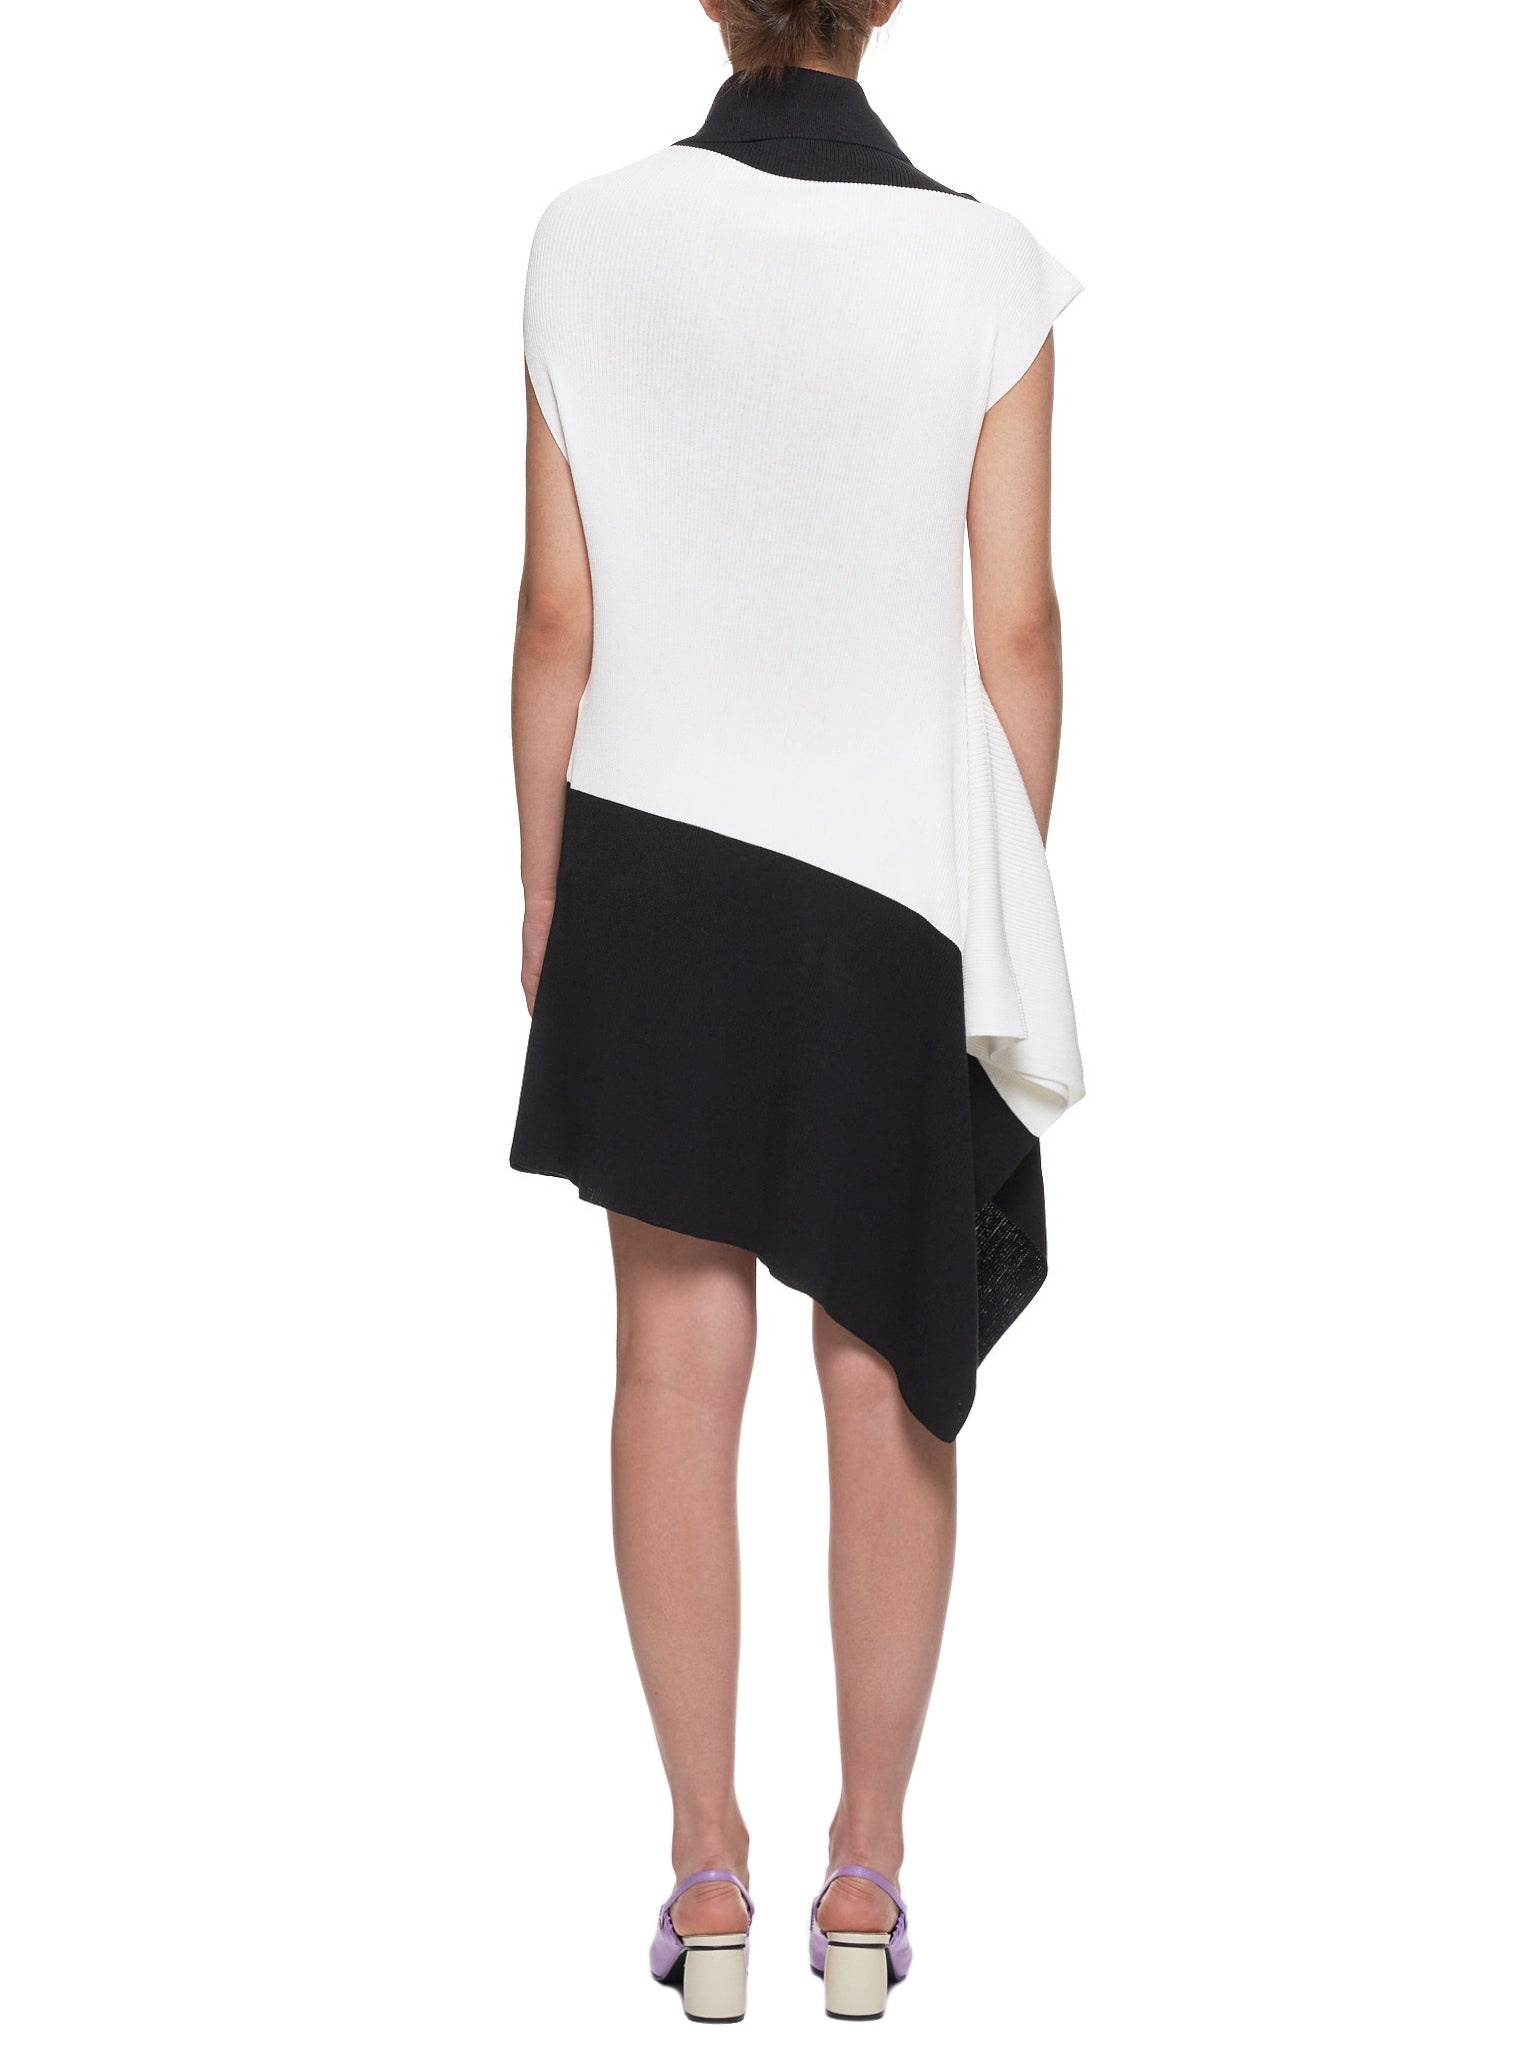 Flat Rib Knit Dress (IL96KT732-WHITE-BLACK)